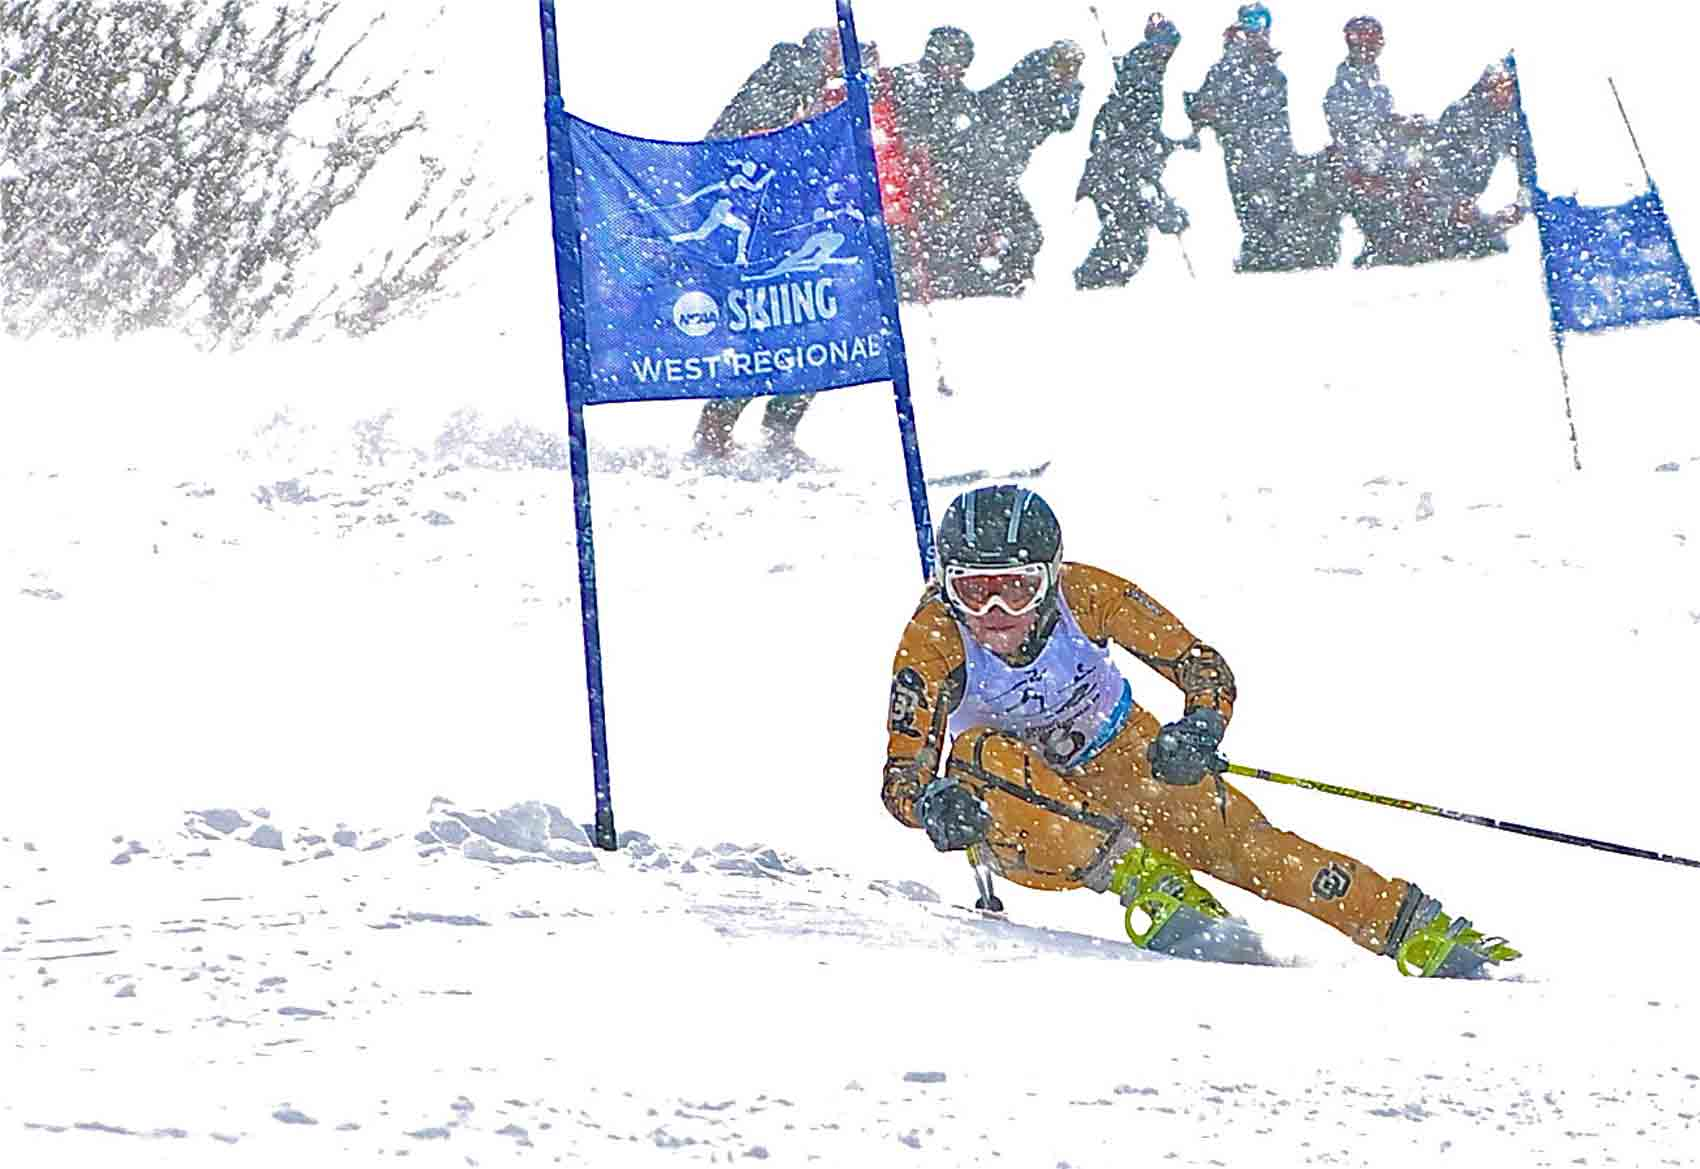 Katie Hartman, fourth in the World University Games super G Jan. 29, skiing for CU last season